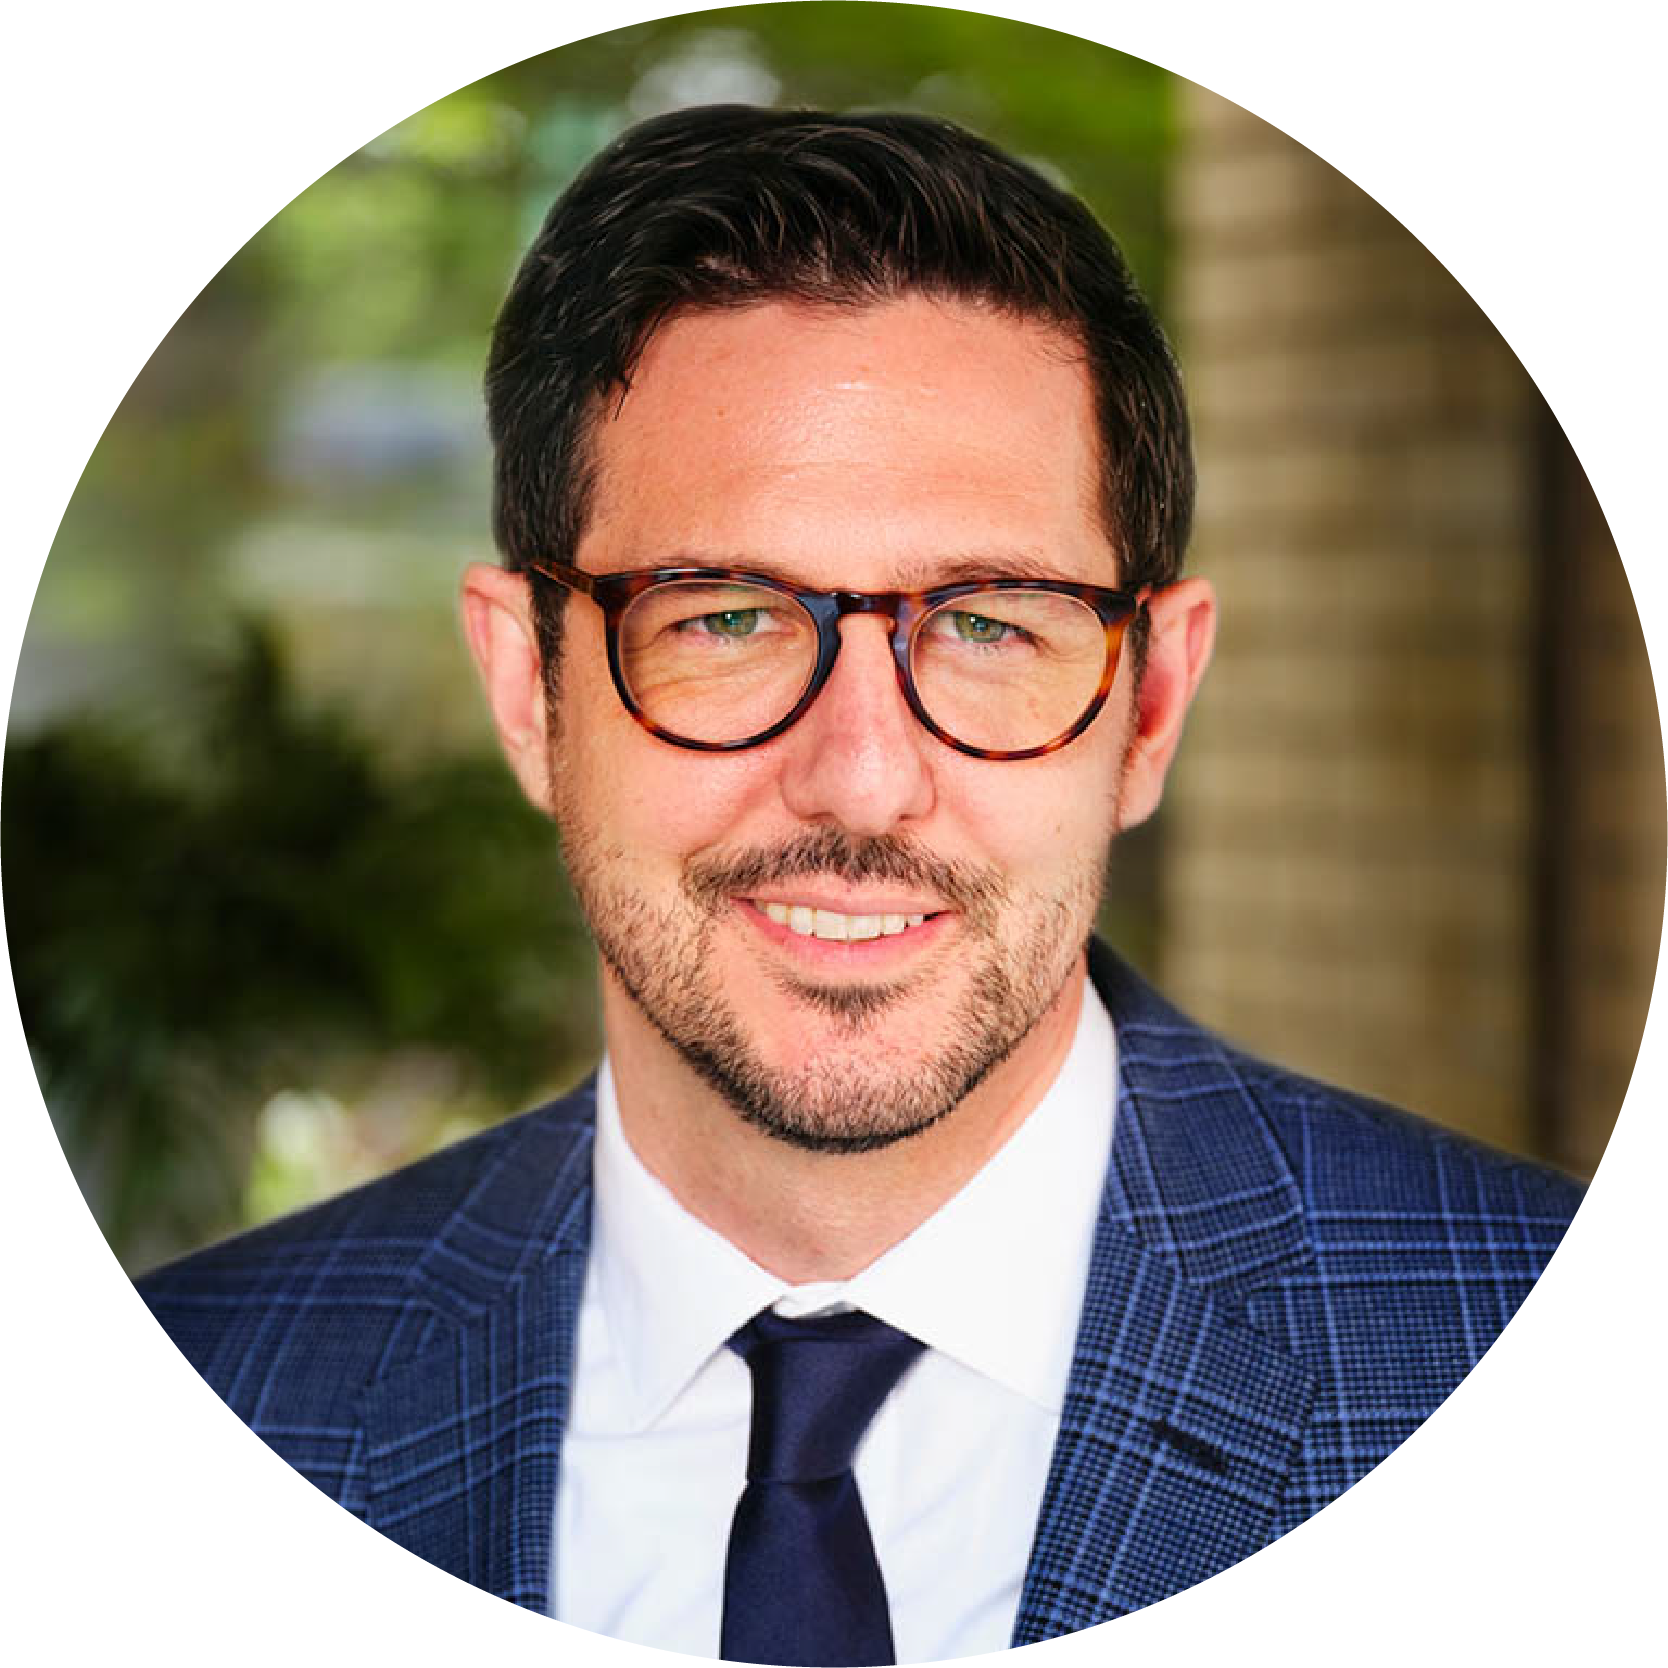 Jared Bauer, MBA